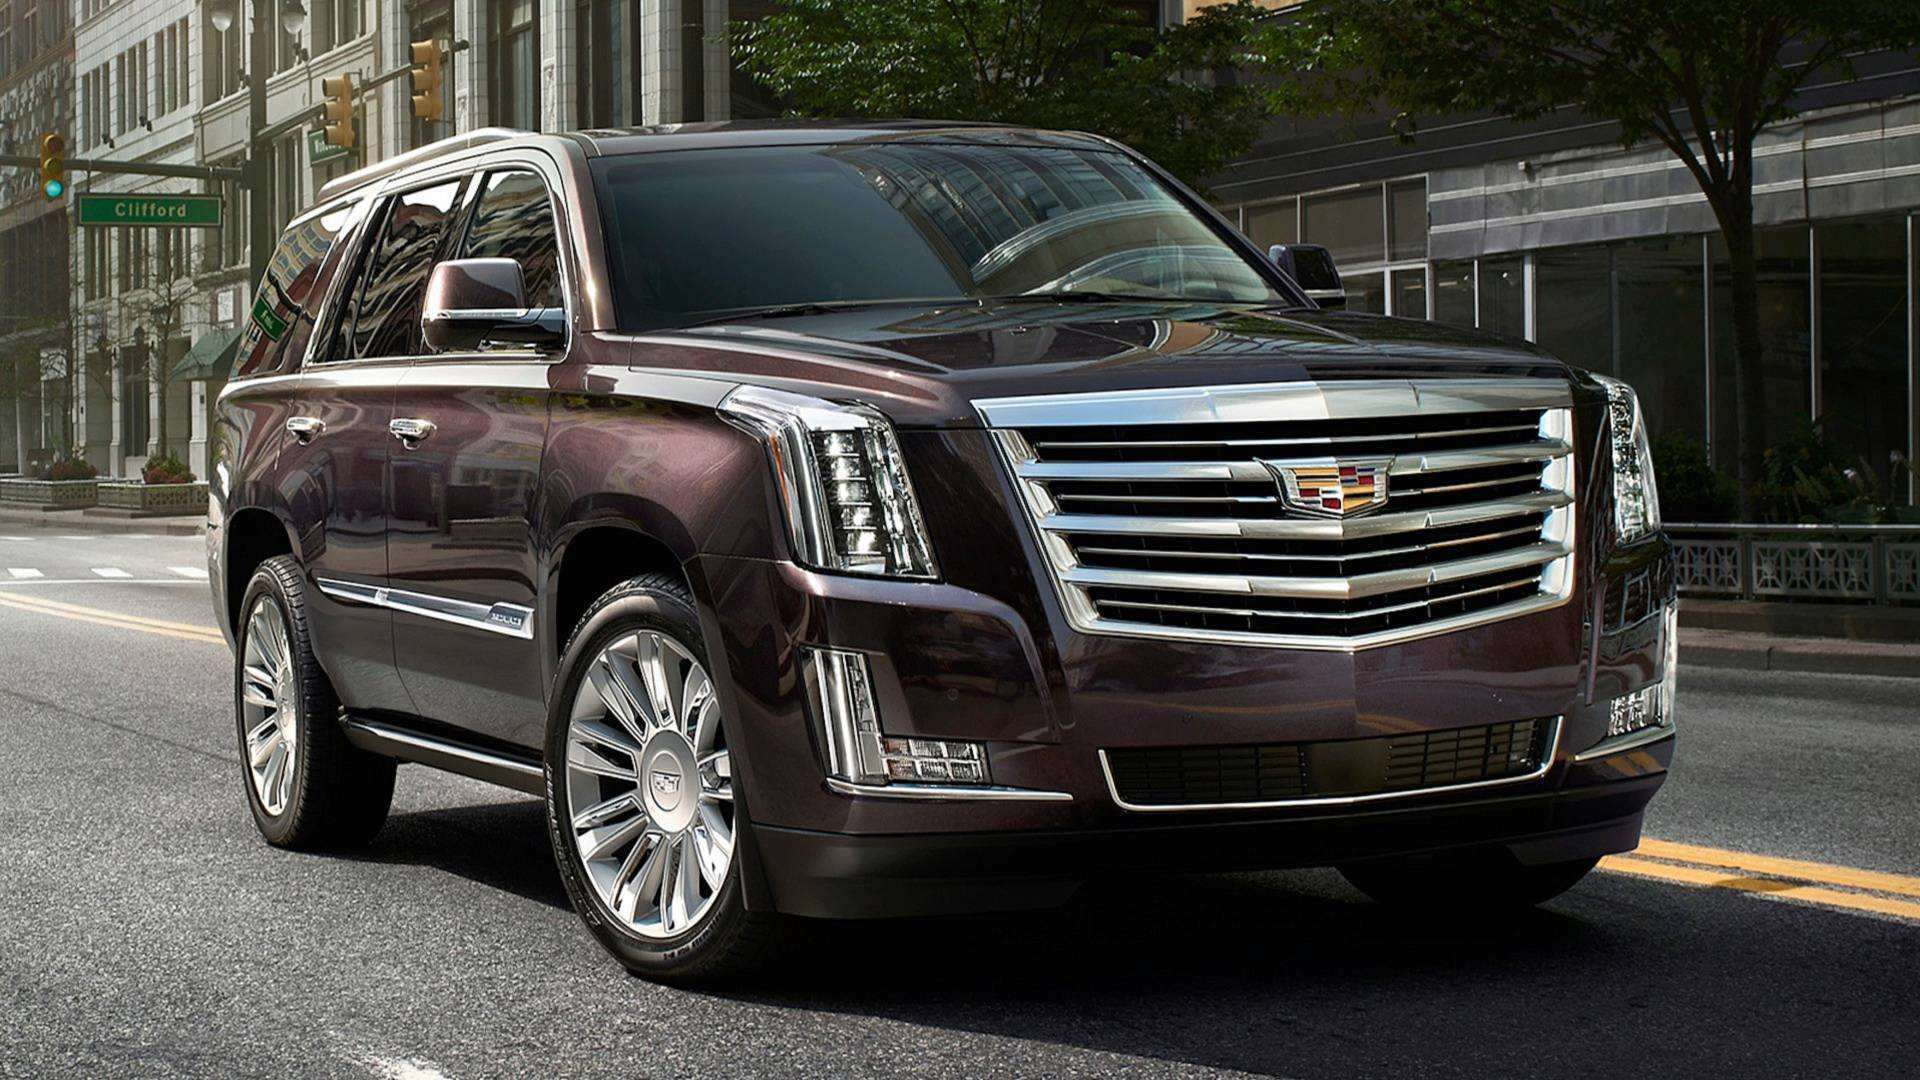 51 The Best Cadillac Escalade 2020 Model Speed Test